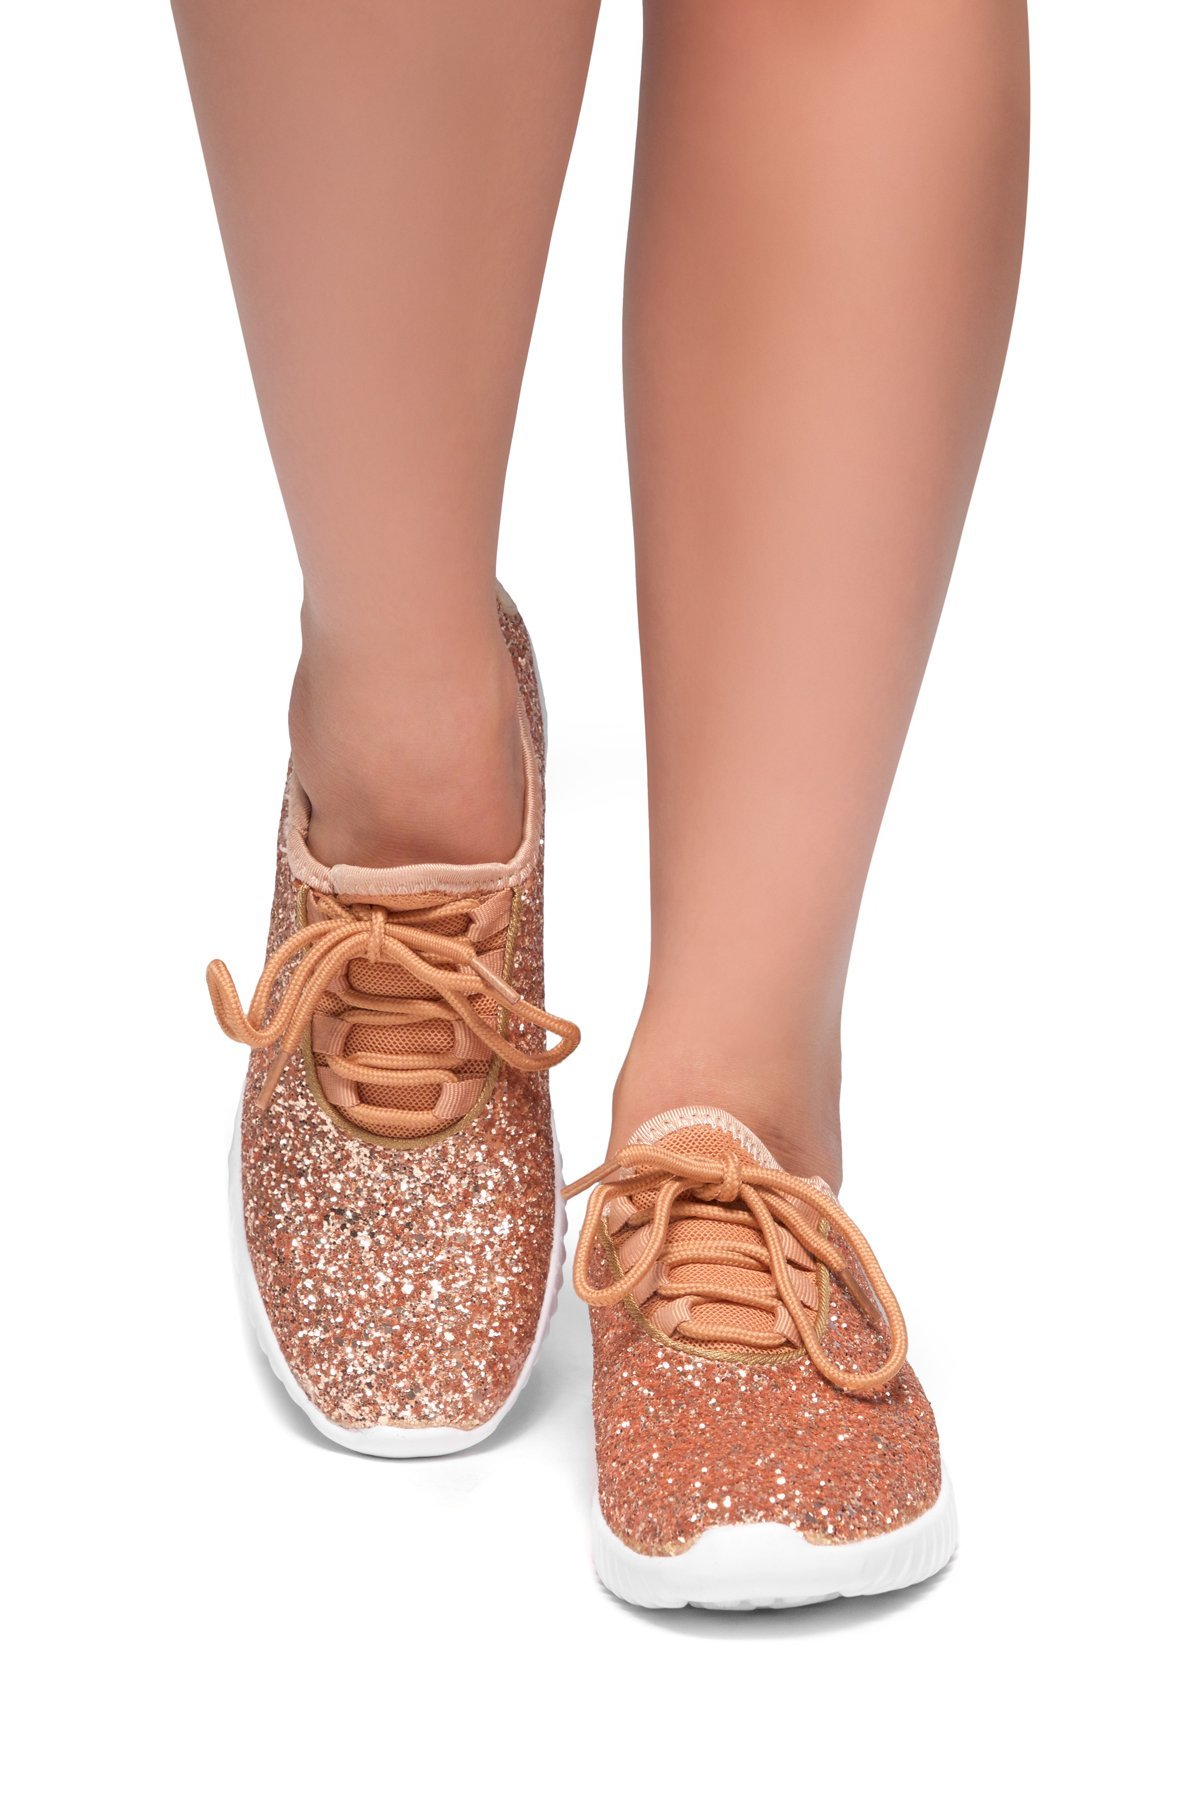 Herstyle Wome's Moniqie Giltter Flat Heel, Glitter Details, Front Lace-up Rose Gold 8.5